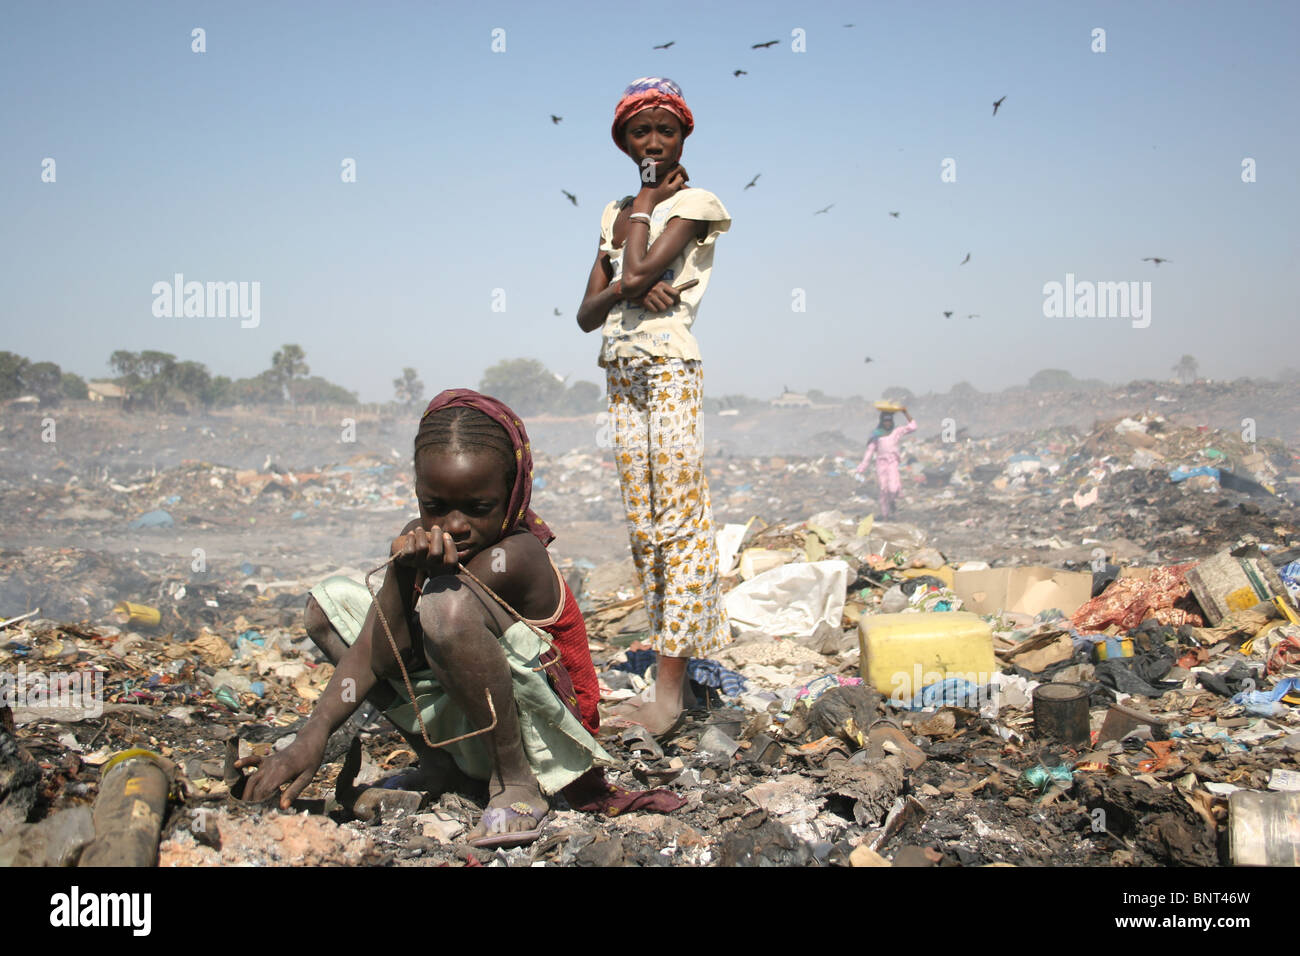 http://c8.alamy.com/comp/BNT46W/gambian-girls-searching-for-scrap-metal-in-mannjai-kunda-rubbish-dump-BNT46W.jpg